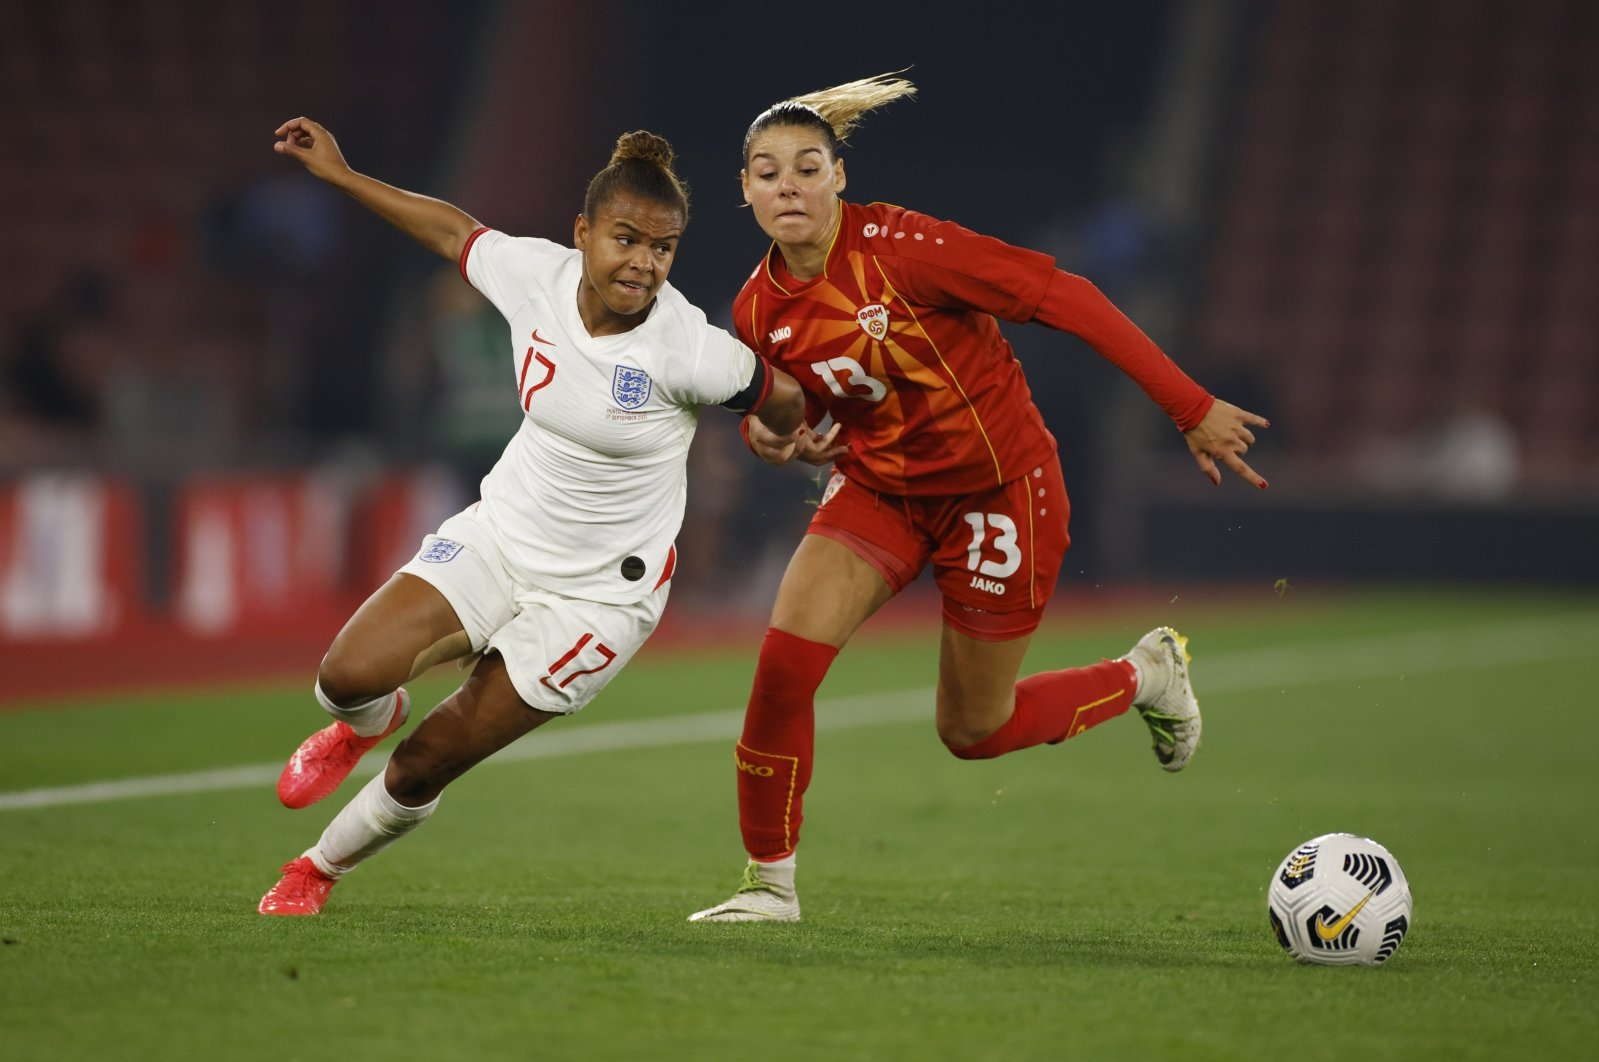 England's Nikita Parris (L) in action with North Macedonia's Julija Zivikj during a women's World Cup UEFA qualifiers at St. Mary's Stadium, Southampton, Britain, Sept. 17, 2021. (Reuters Photo)